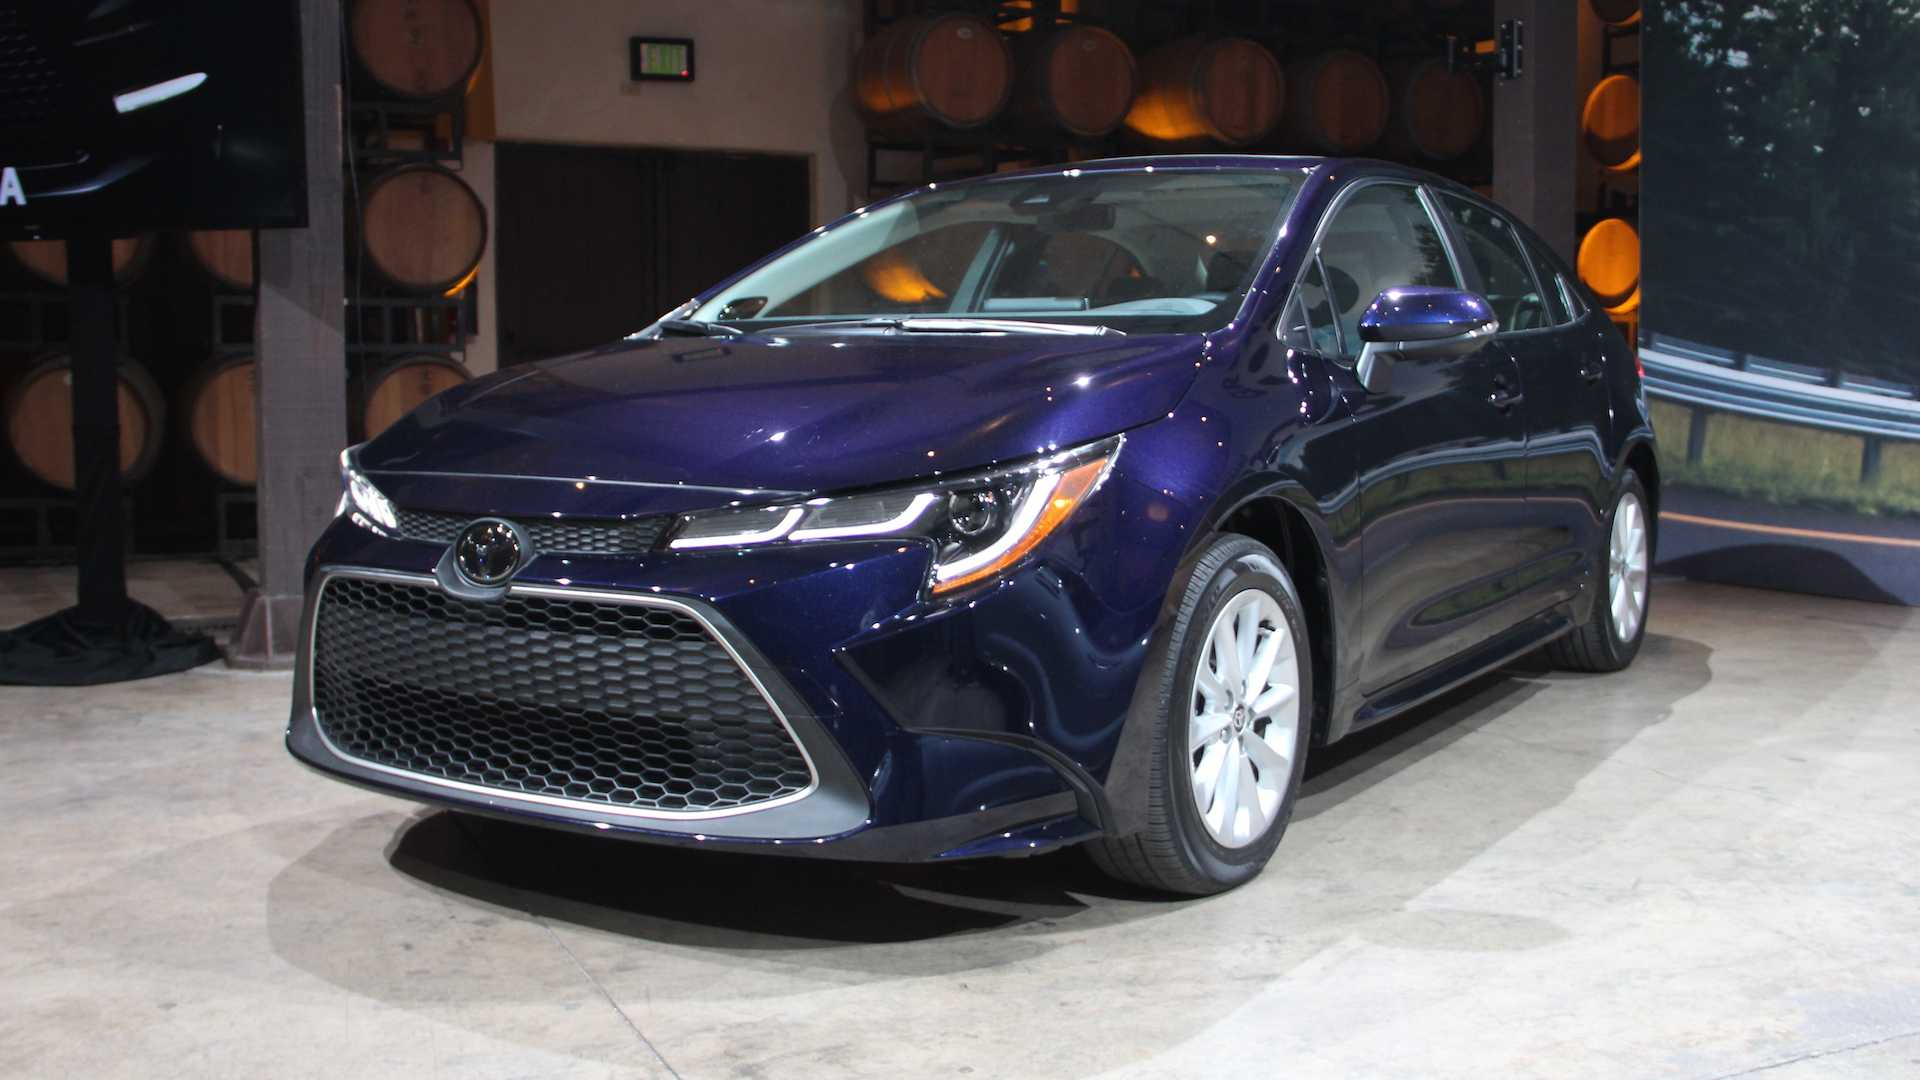 53 The Best Toyota Corolla 2020 Model Ratings